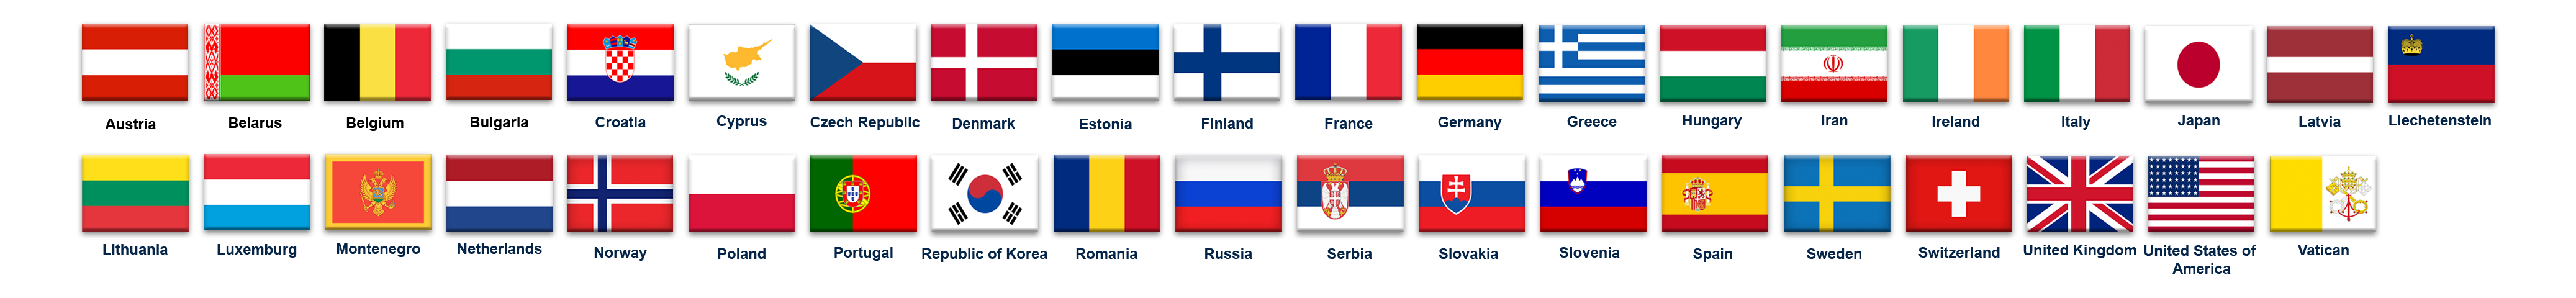 CTIF MEMBER NATIONS FLAGS